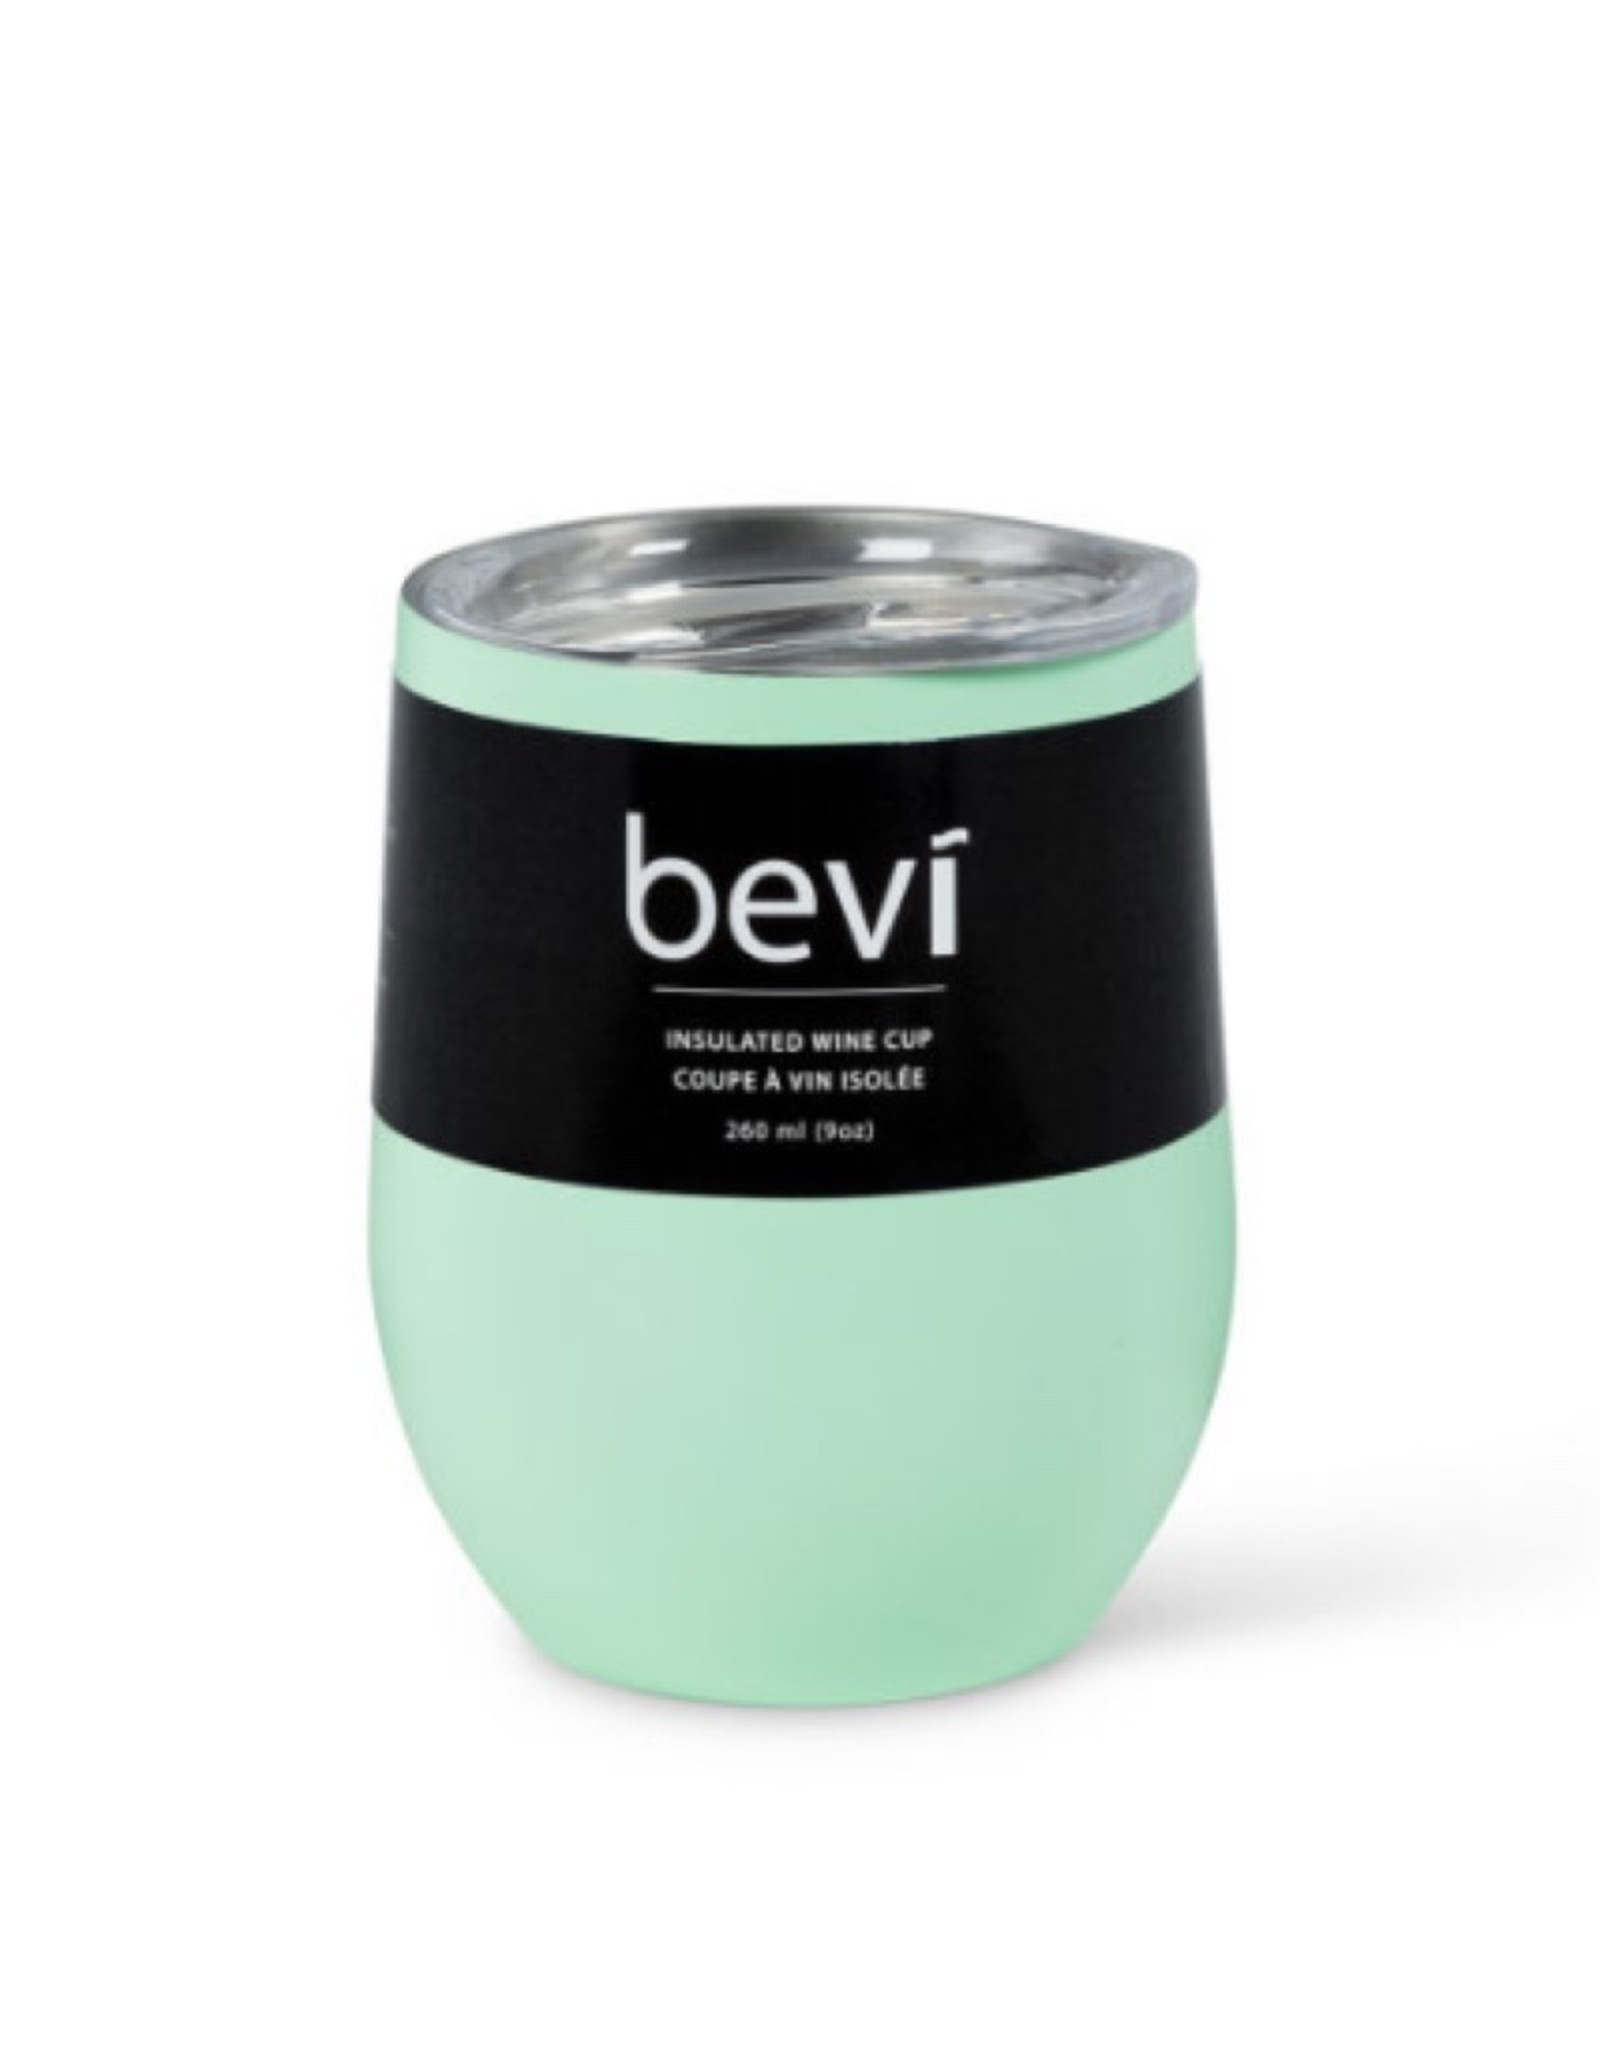 27-BEVI-SG-MINT Mint Insulated Wine Tumbler 12oz